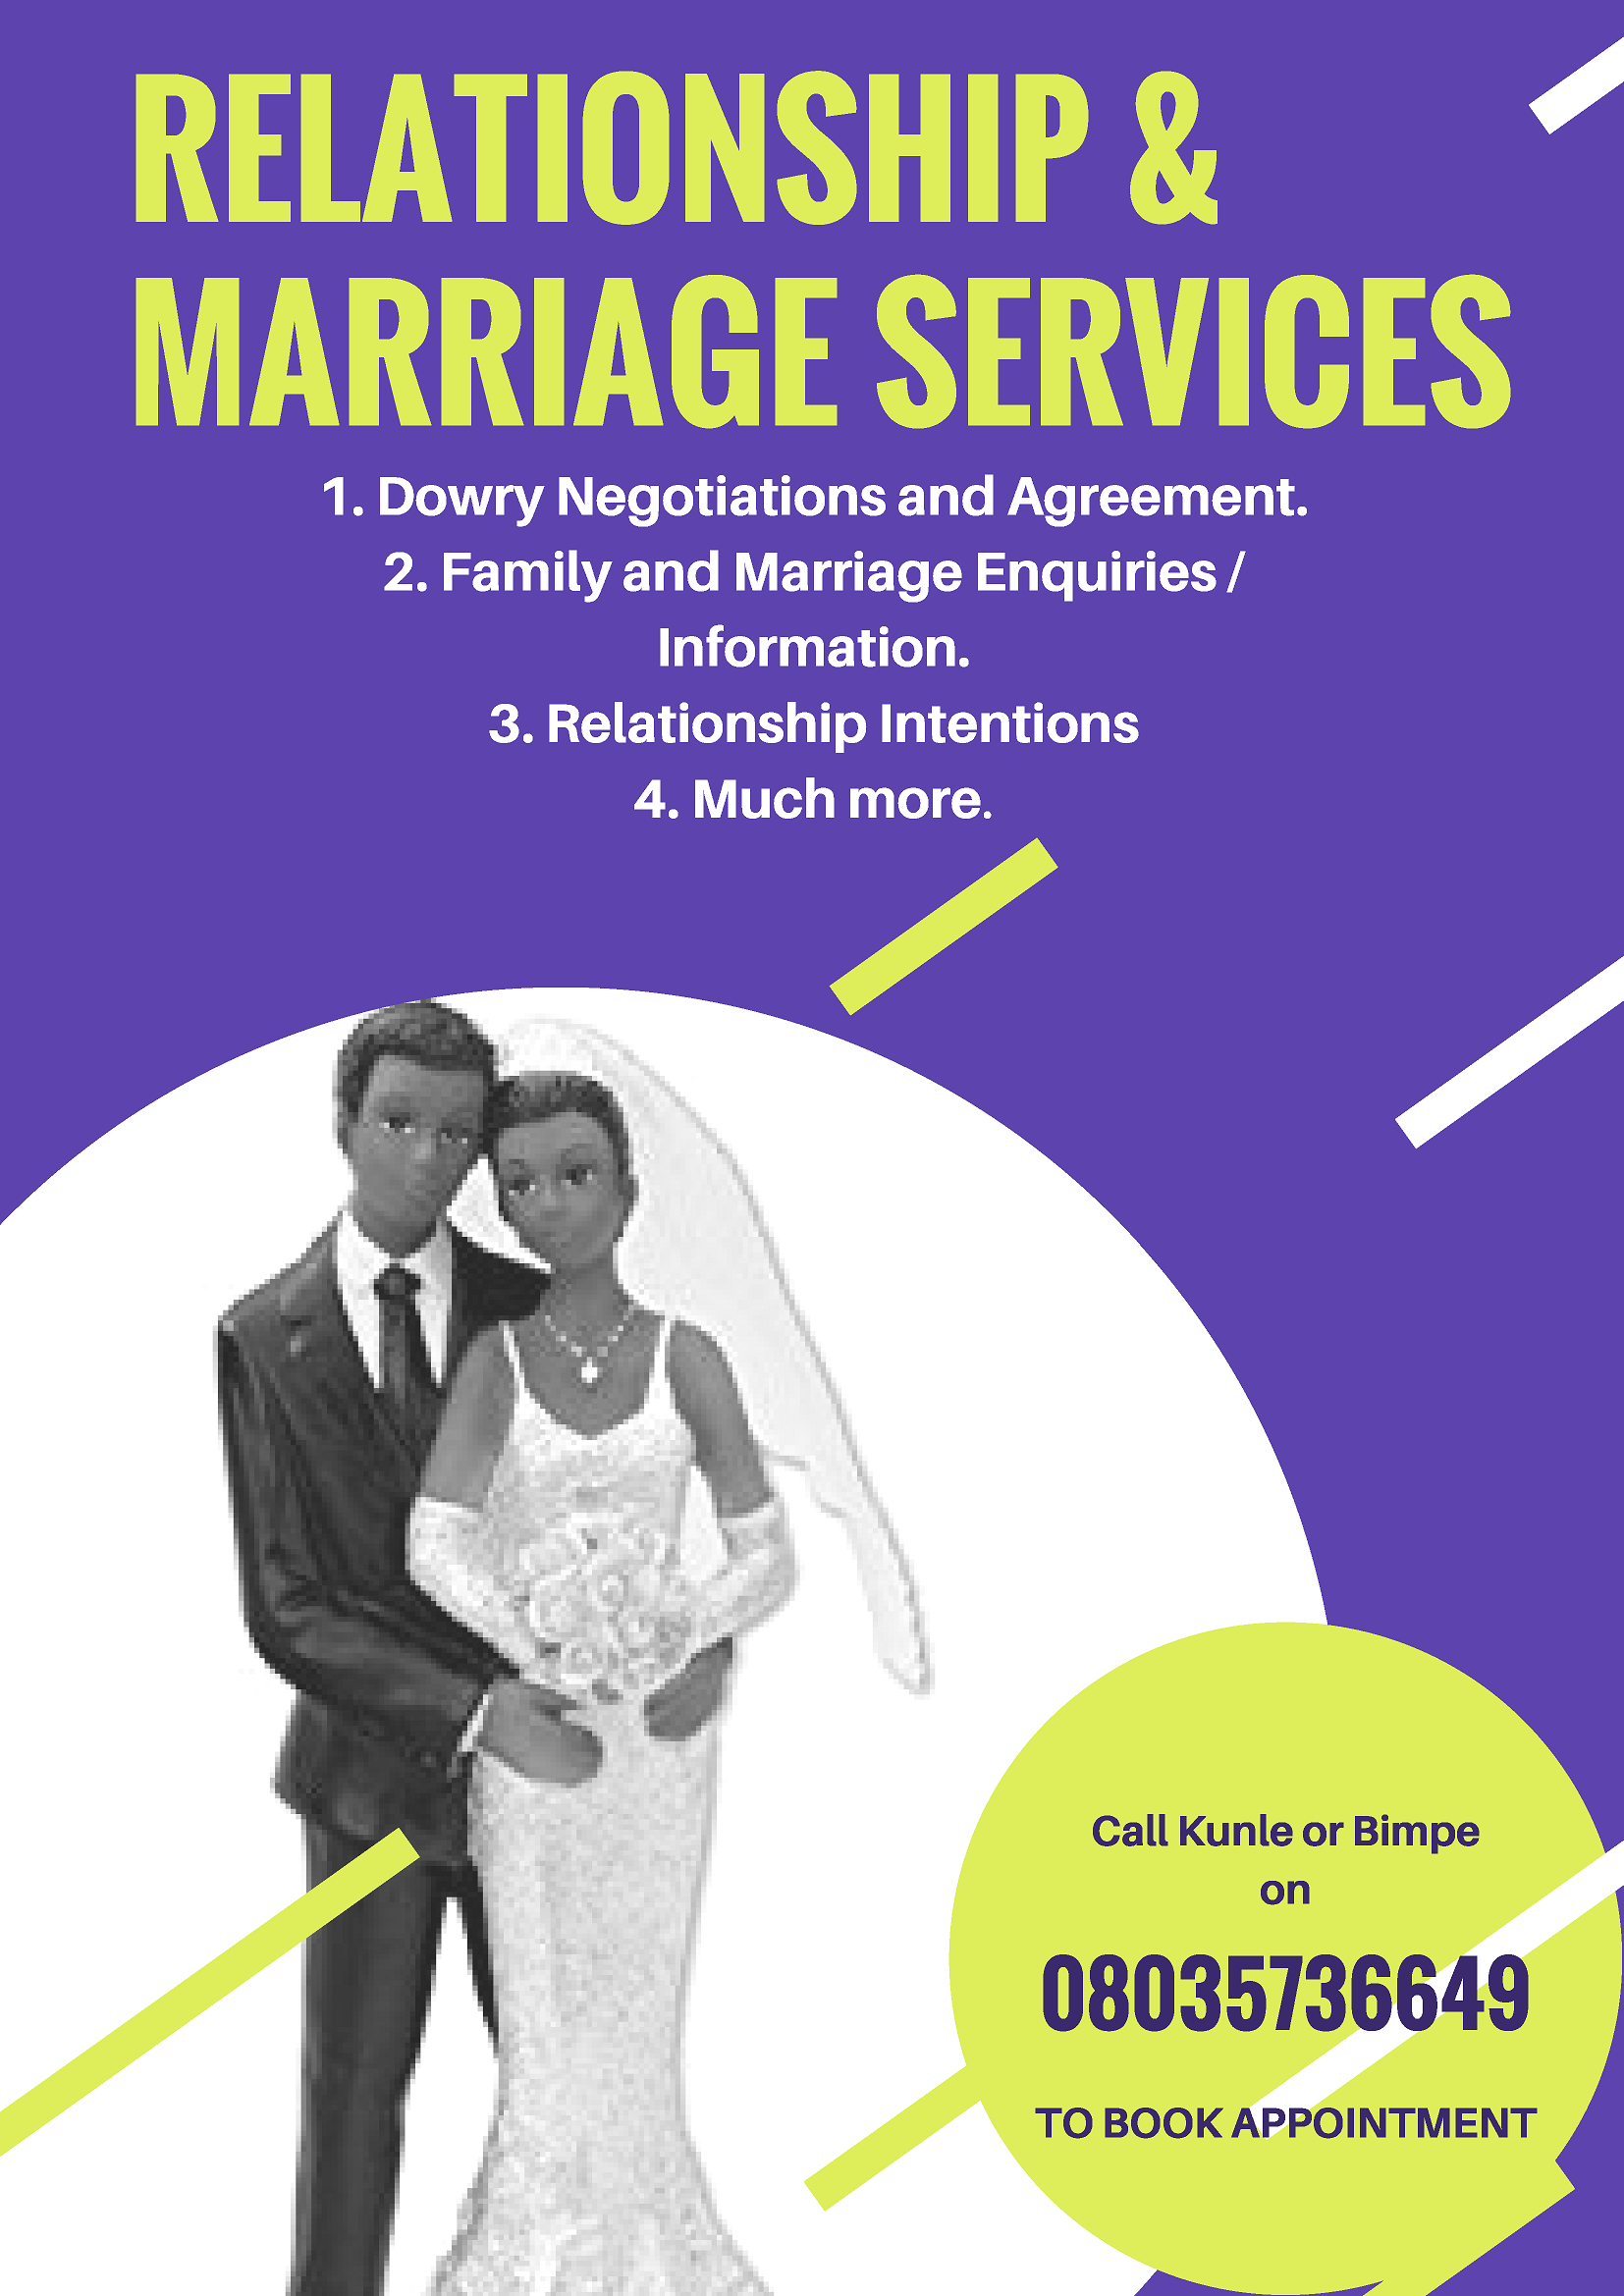 RELATIONSHIP & MARRIAGE SERVICES